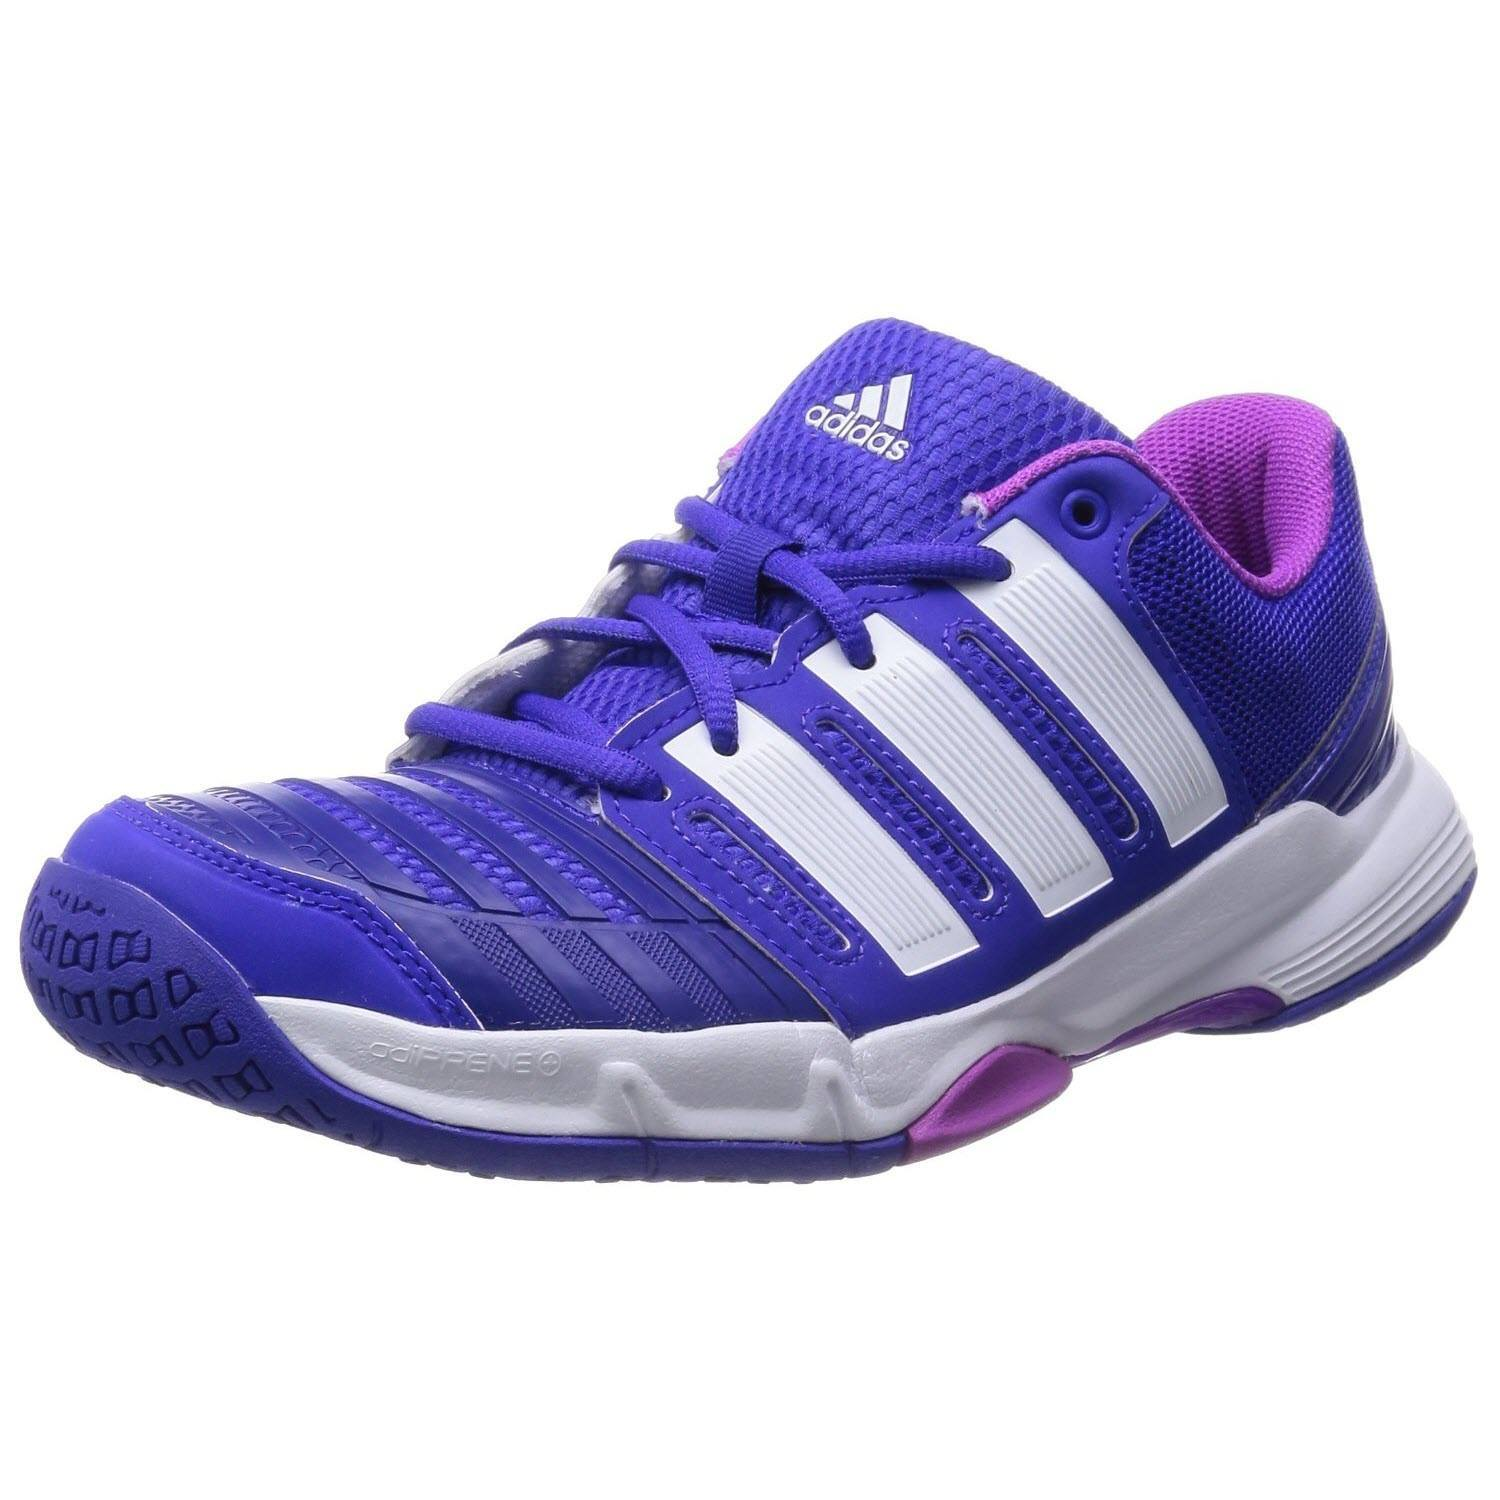 Adidas Court Stabil 11 Women - Purple